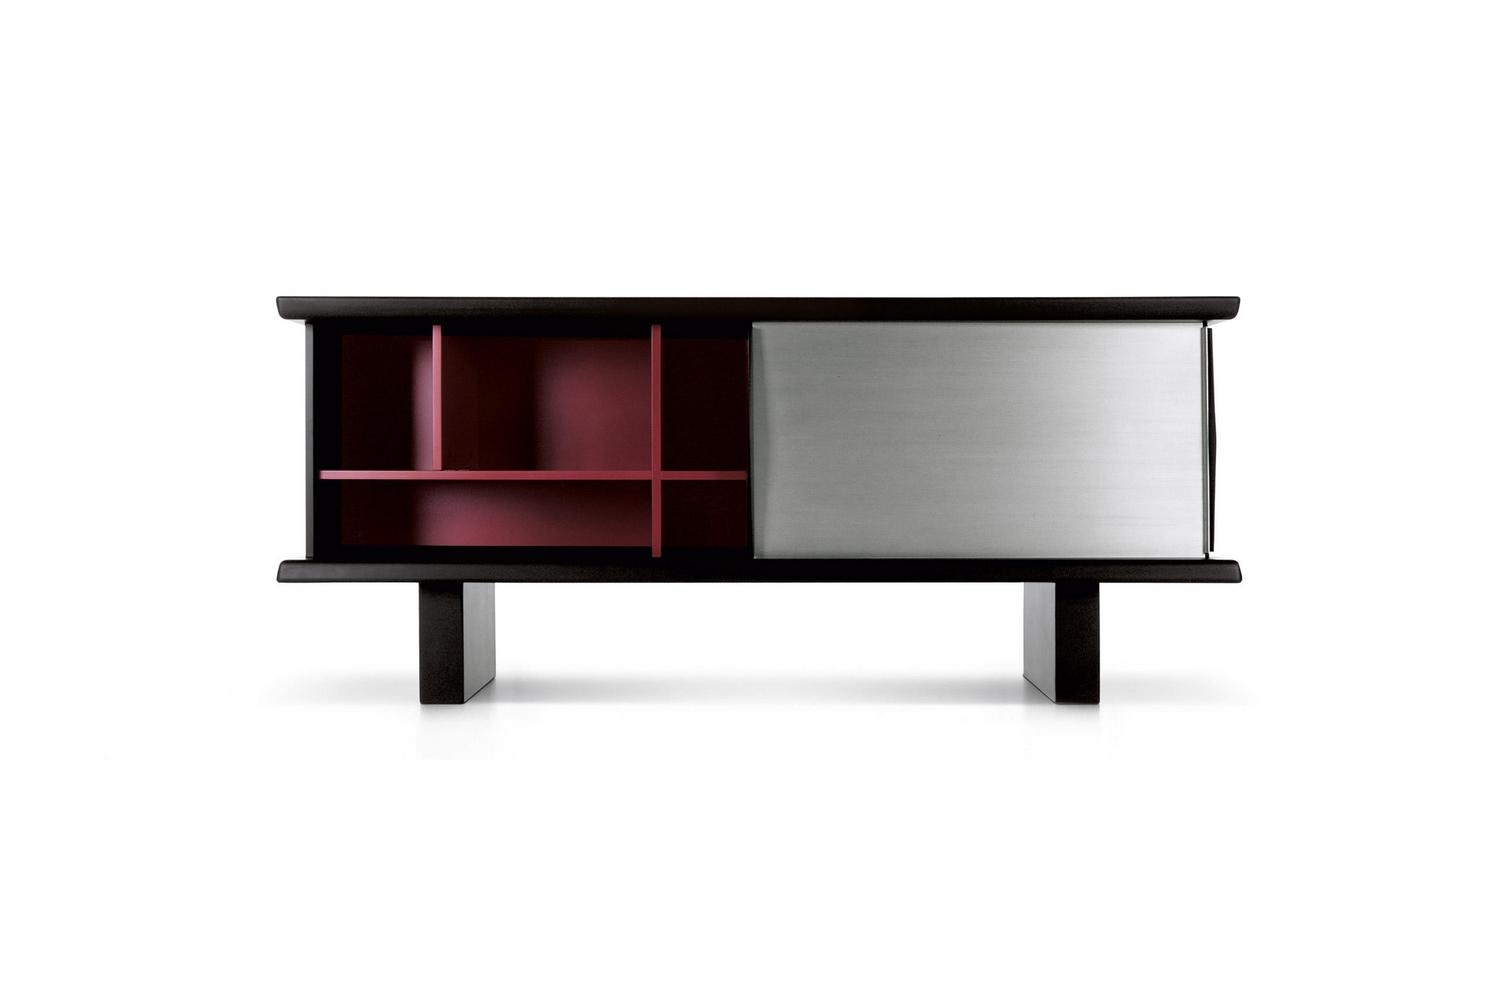 513 Riflesso Sideboard by Charlotte Perriand for Cassina